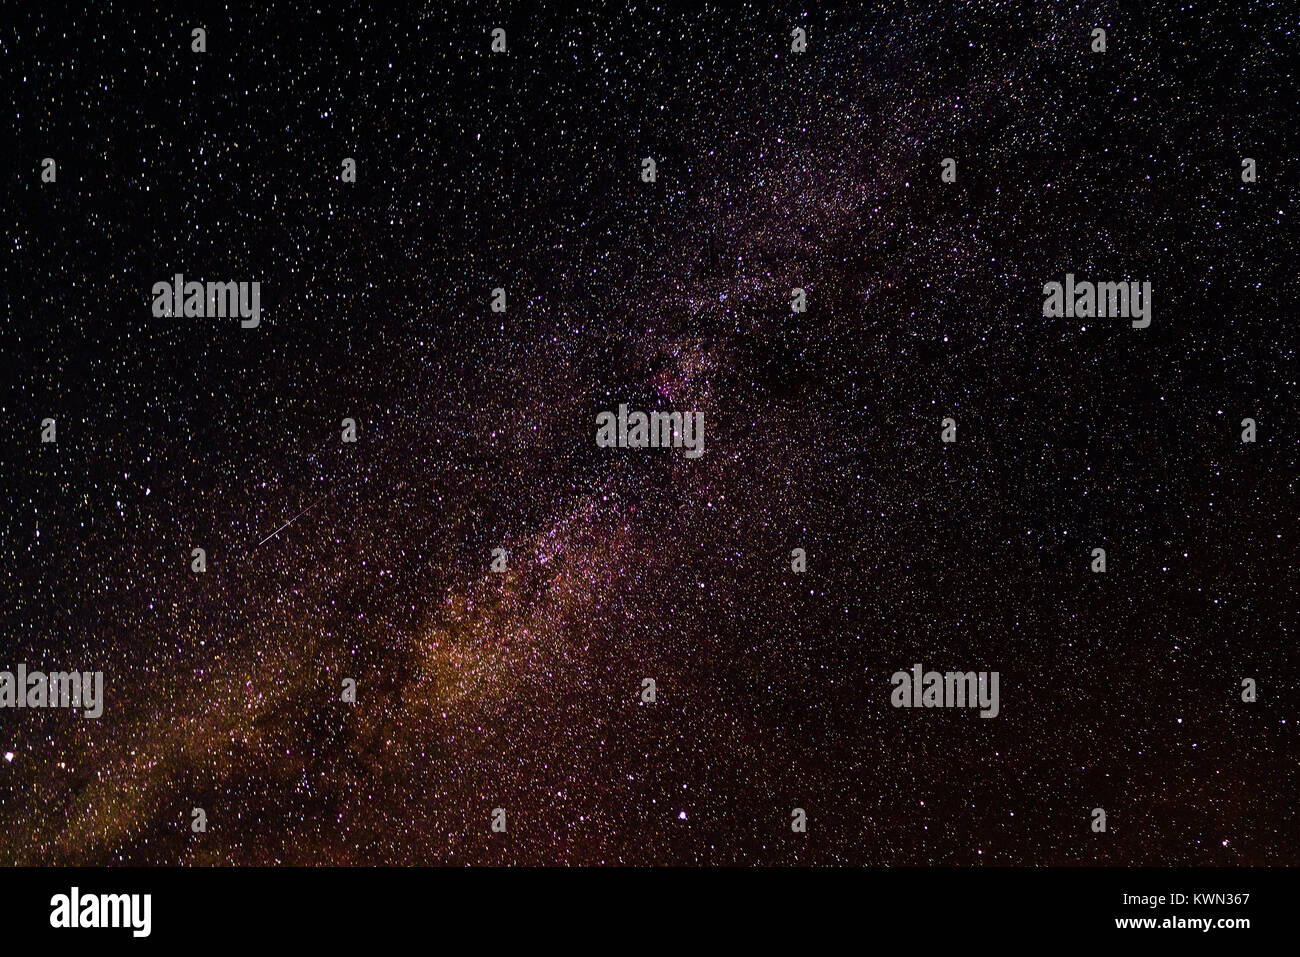 Milky Way Galaxy, Long exposure photograph, with grain - Stock Image